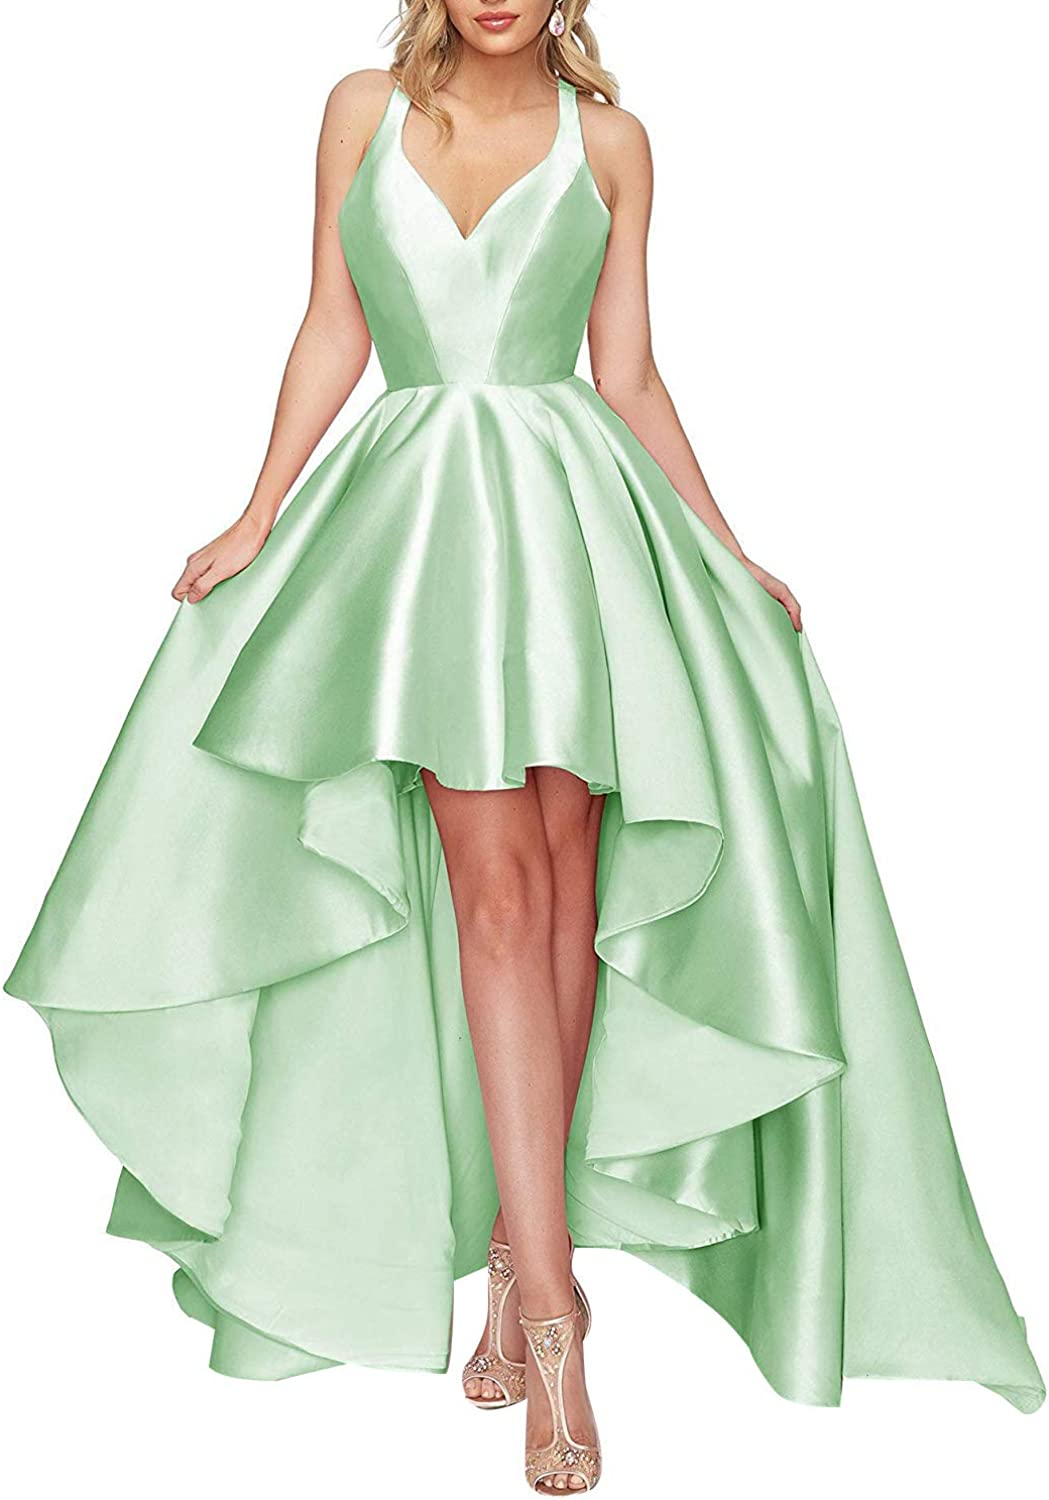 V Neck Prom Gowns High Low Satin 2019 Open Back Formal Evening Dreses for Women